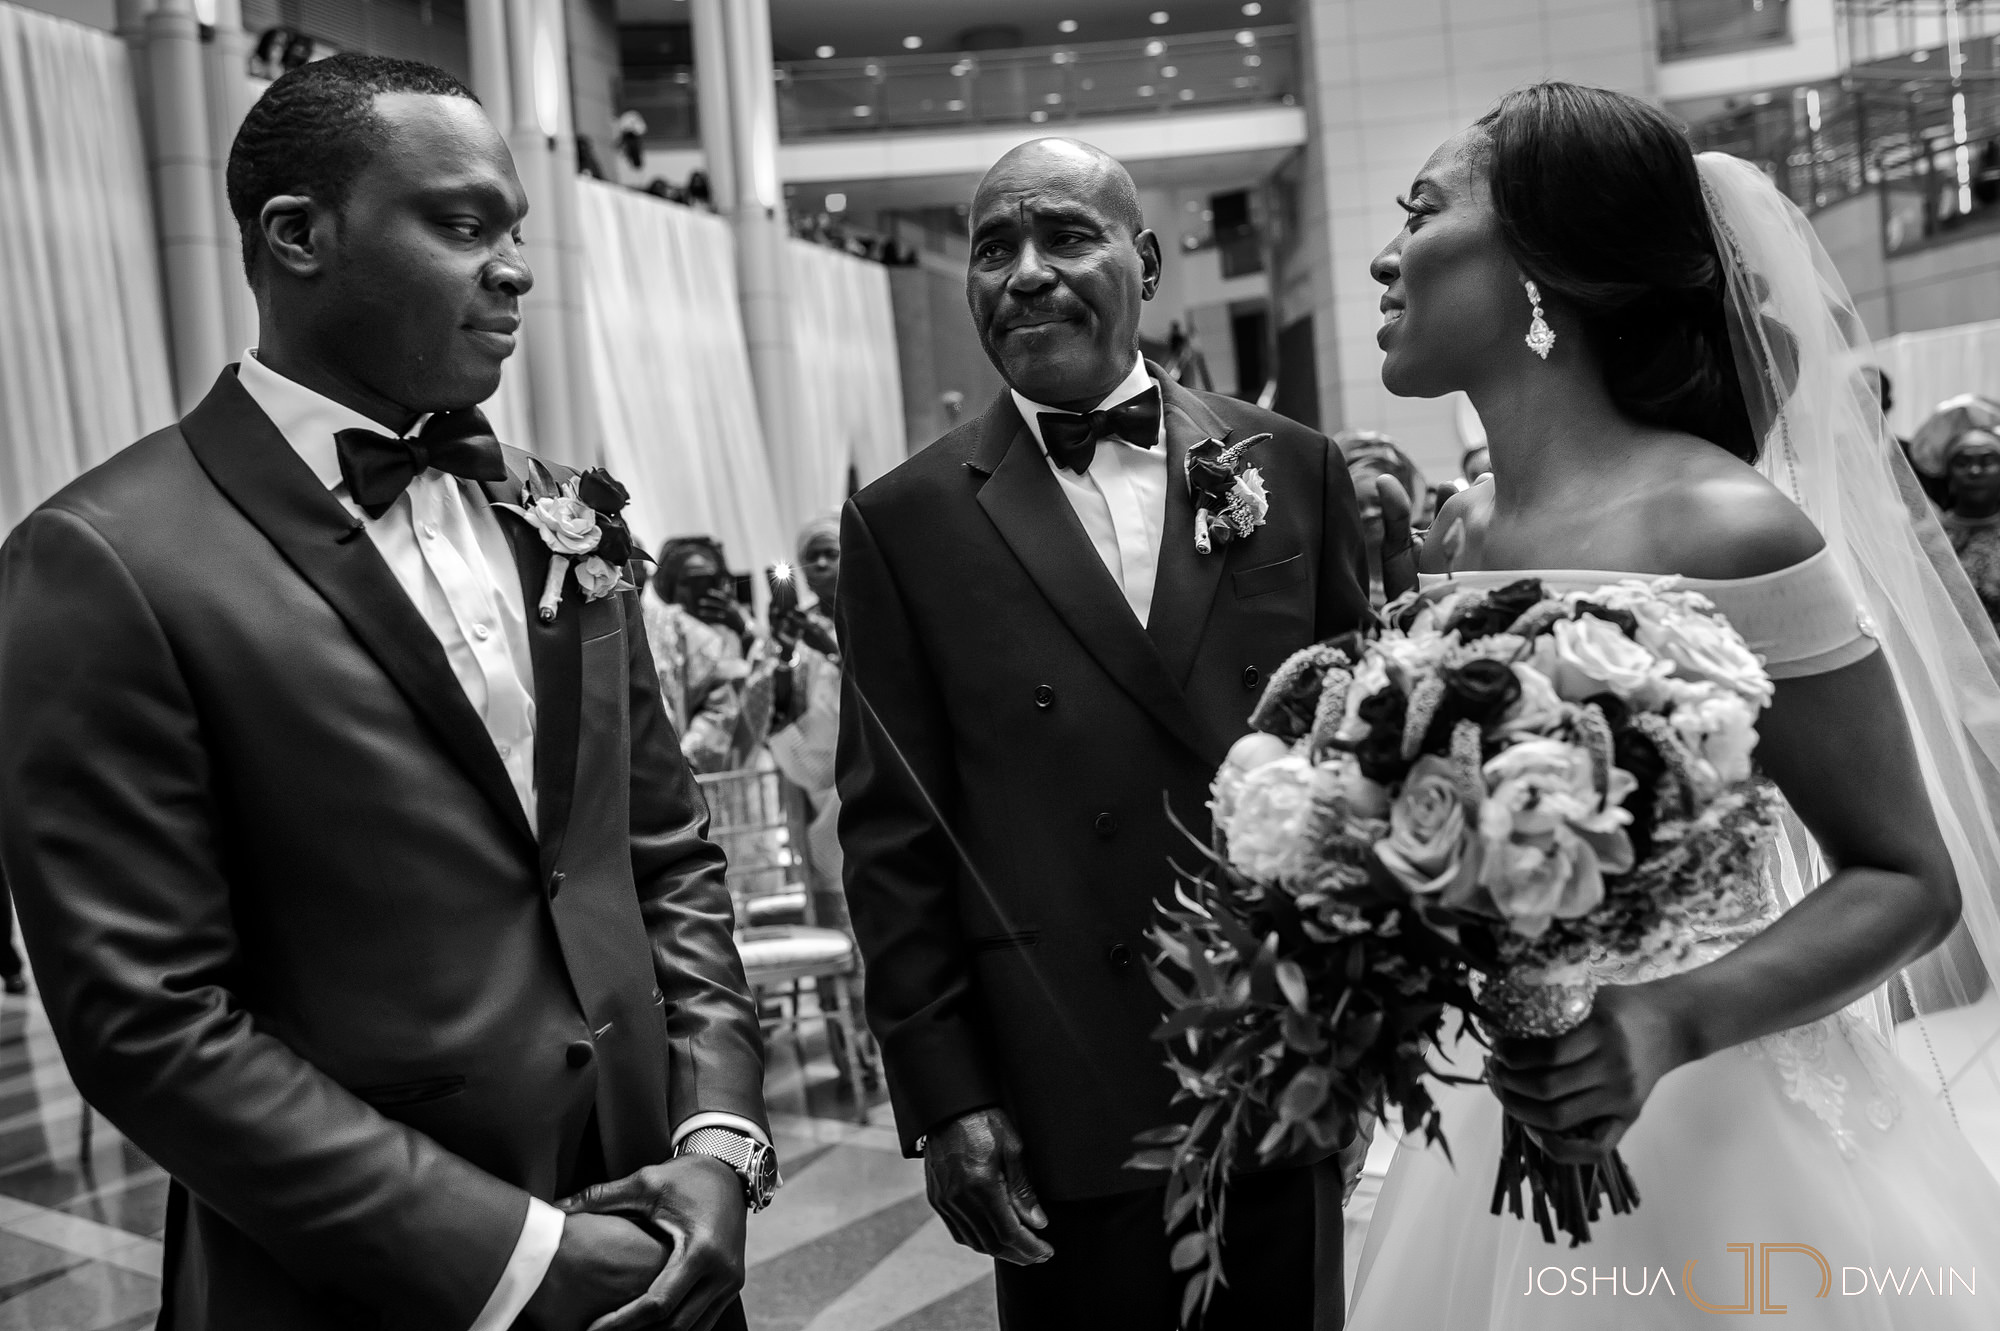 emerald-tolu--030-ronald-reagan-building-trade-center-best-washington-dc--wedding-photographer-joshua-dwain